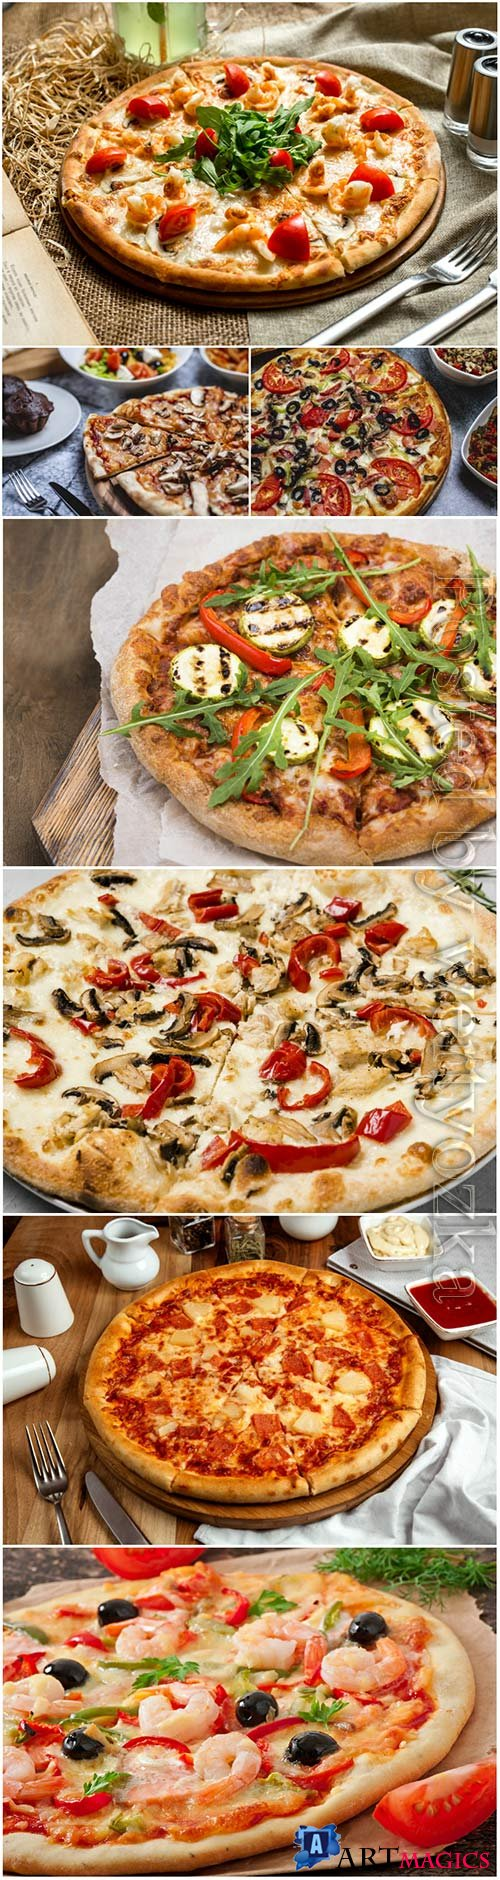 Pizza with meat, seafood, mushrooms and vegetables stock photo